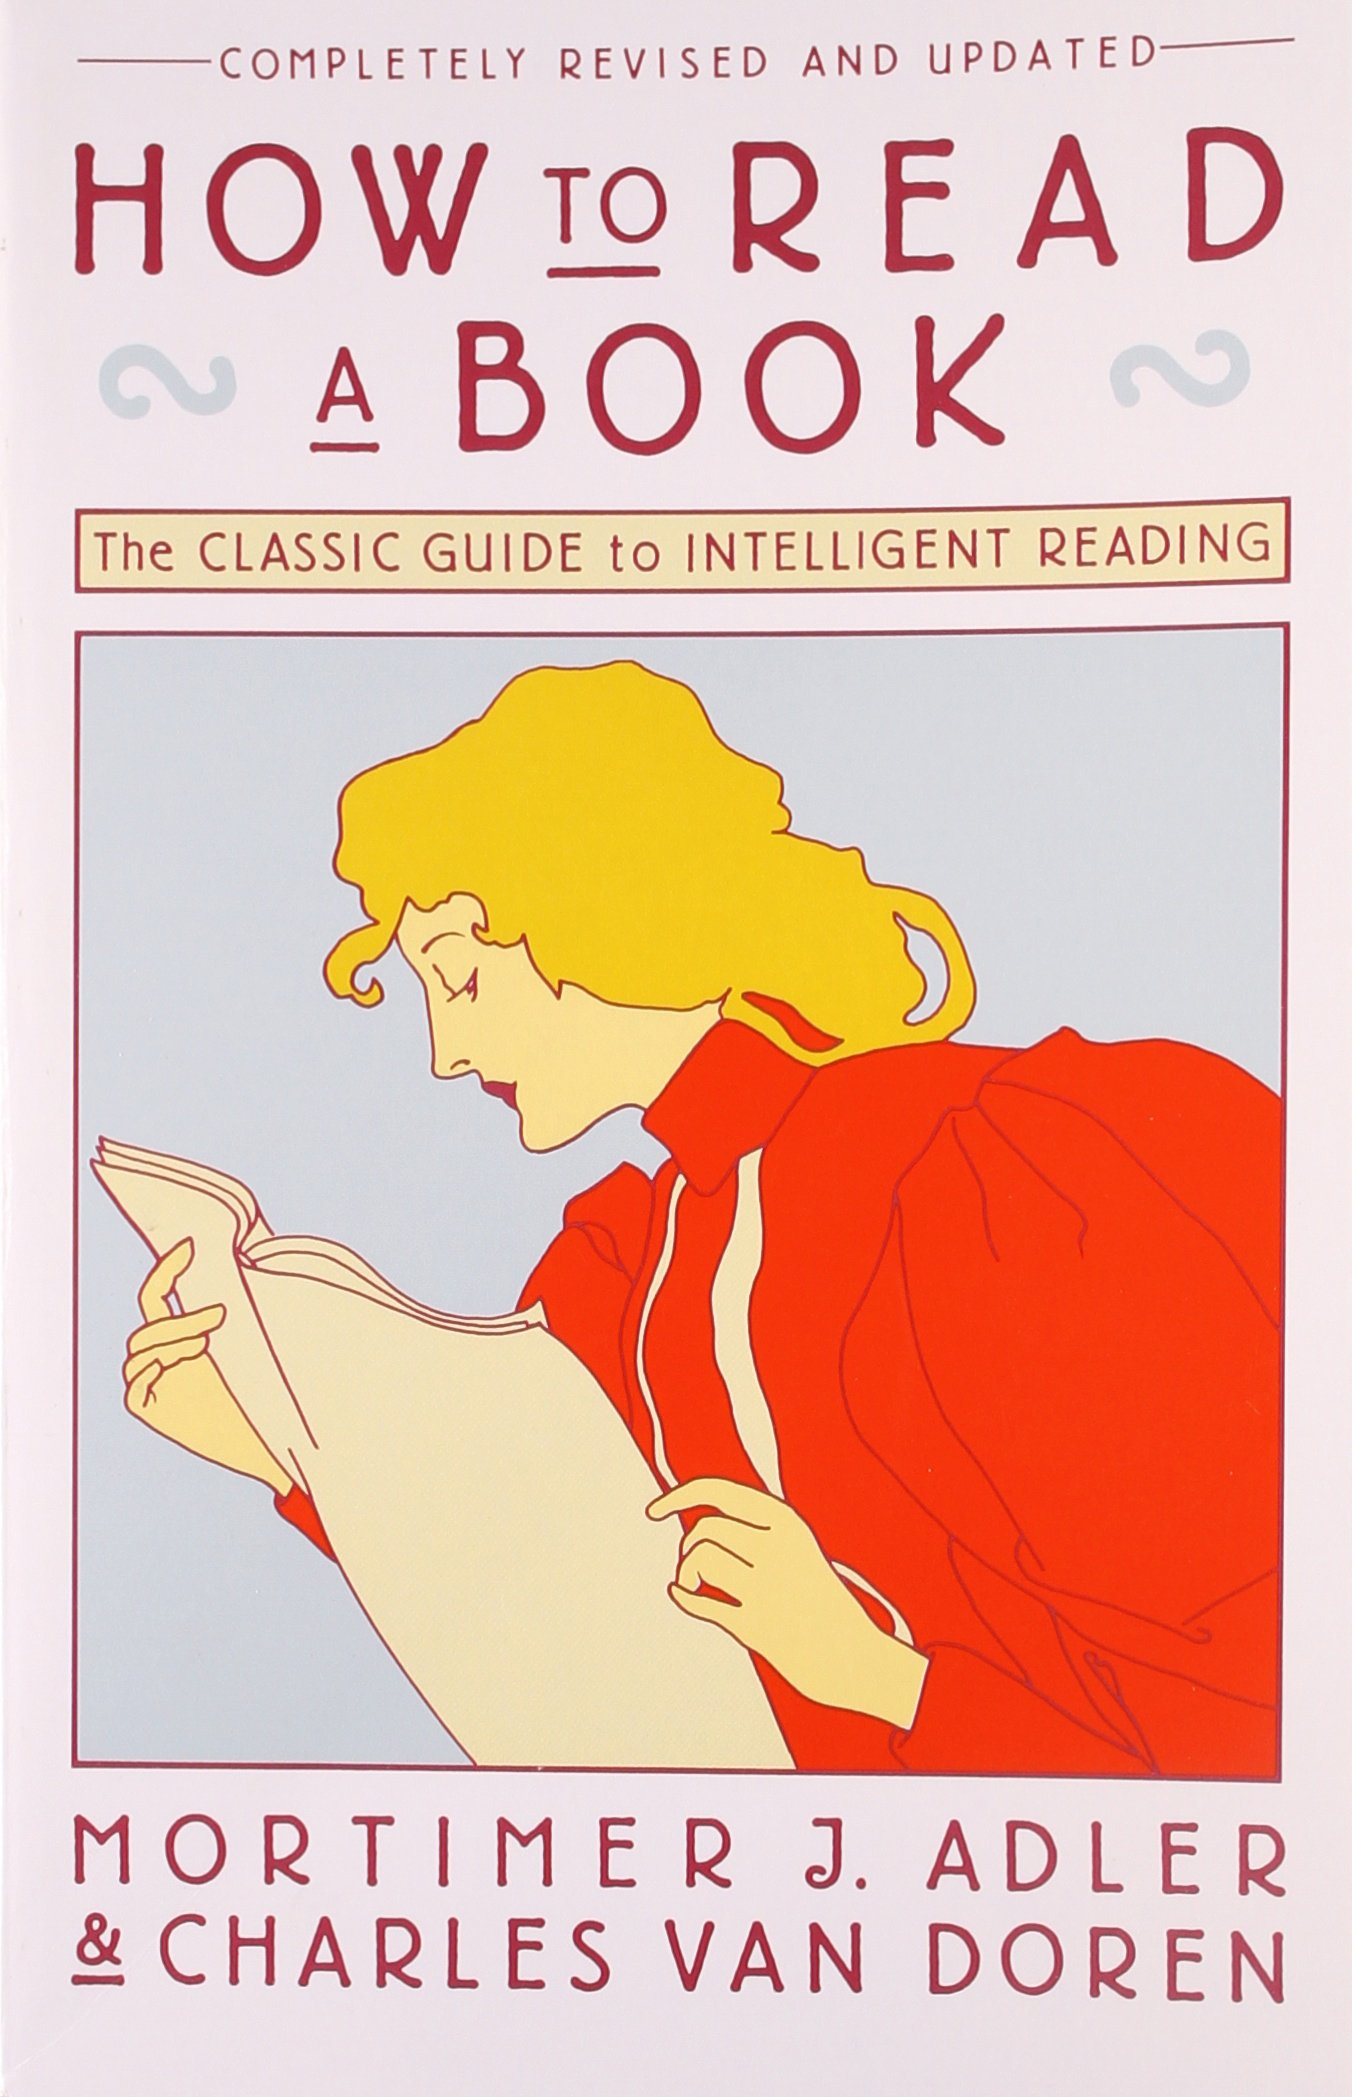 How To Read a Book Cover page